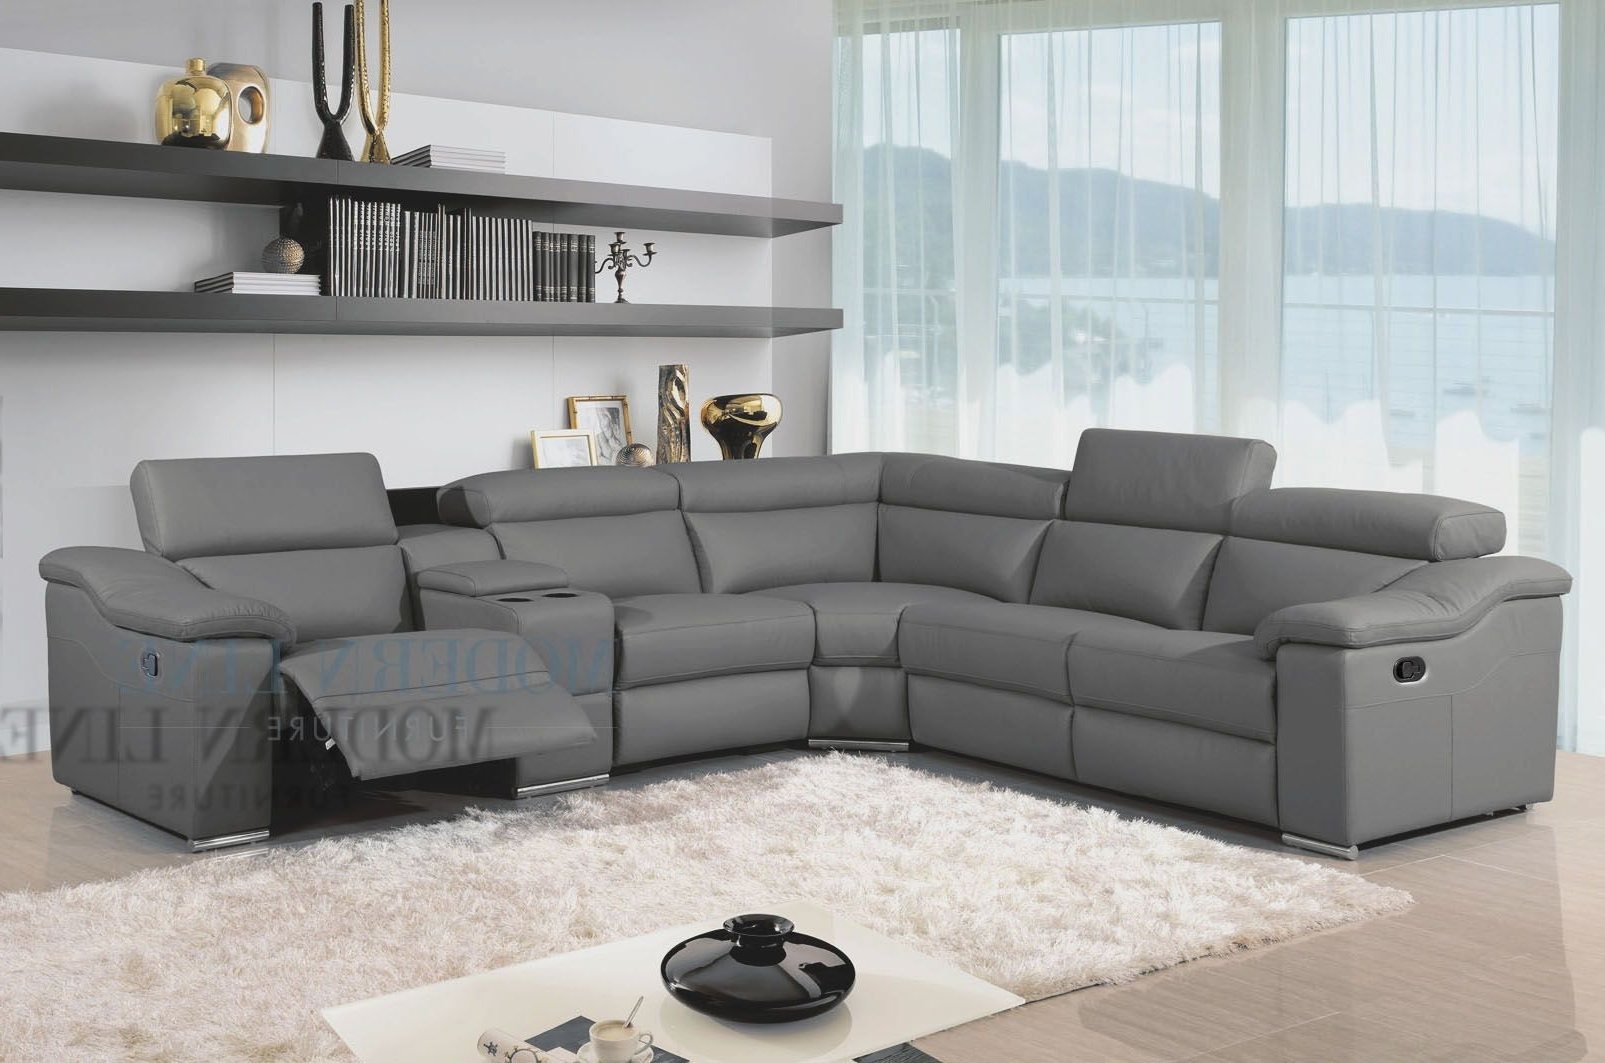 Well Liked Modern Reclining Leather Sofas Pertaining To Awesome Great Charcoal Grey Sectional Sofa 29 About Remodel Home (View 15 of 15)